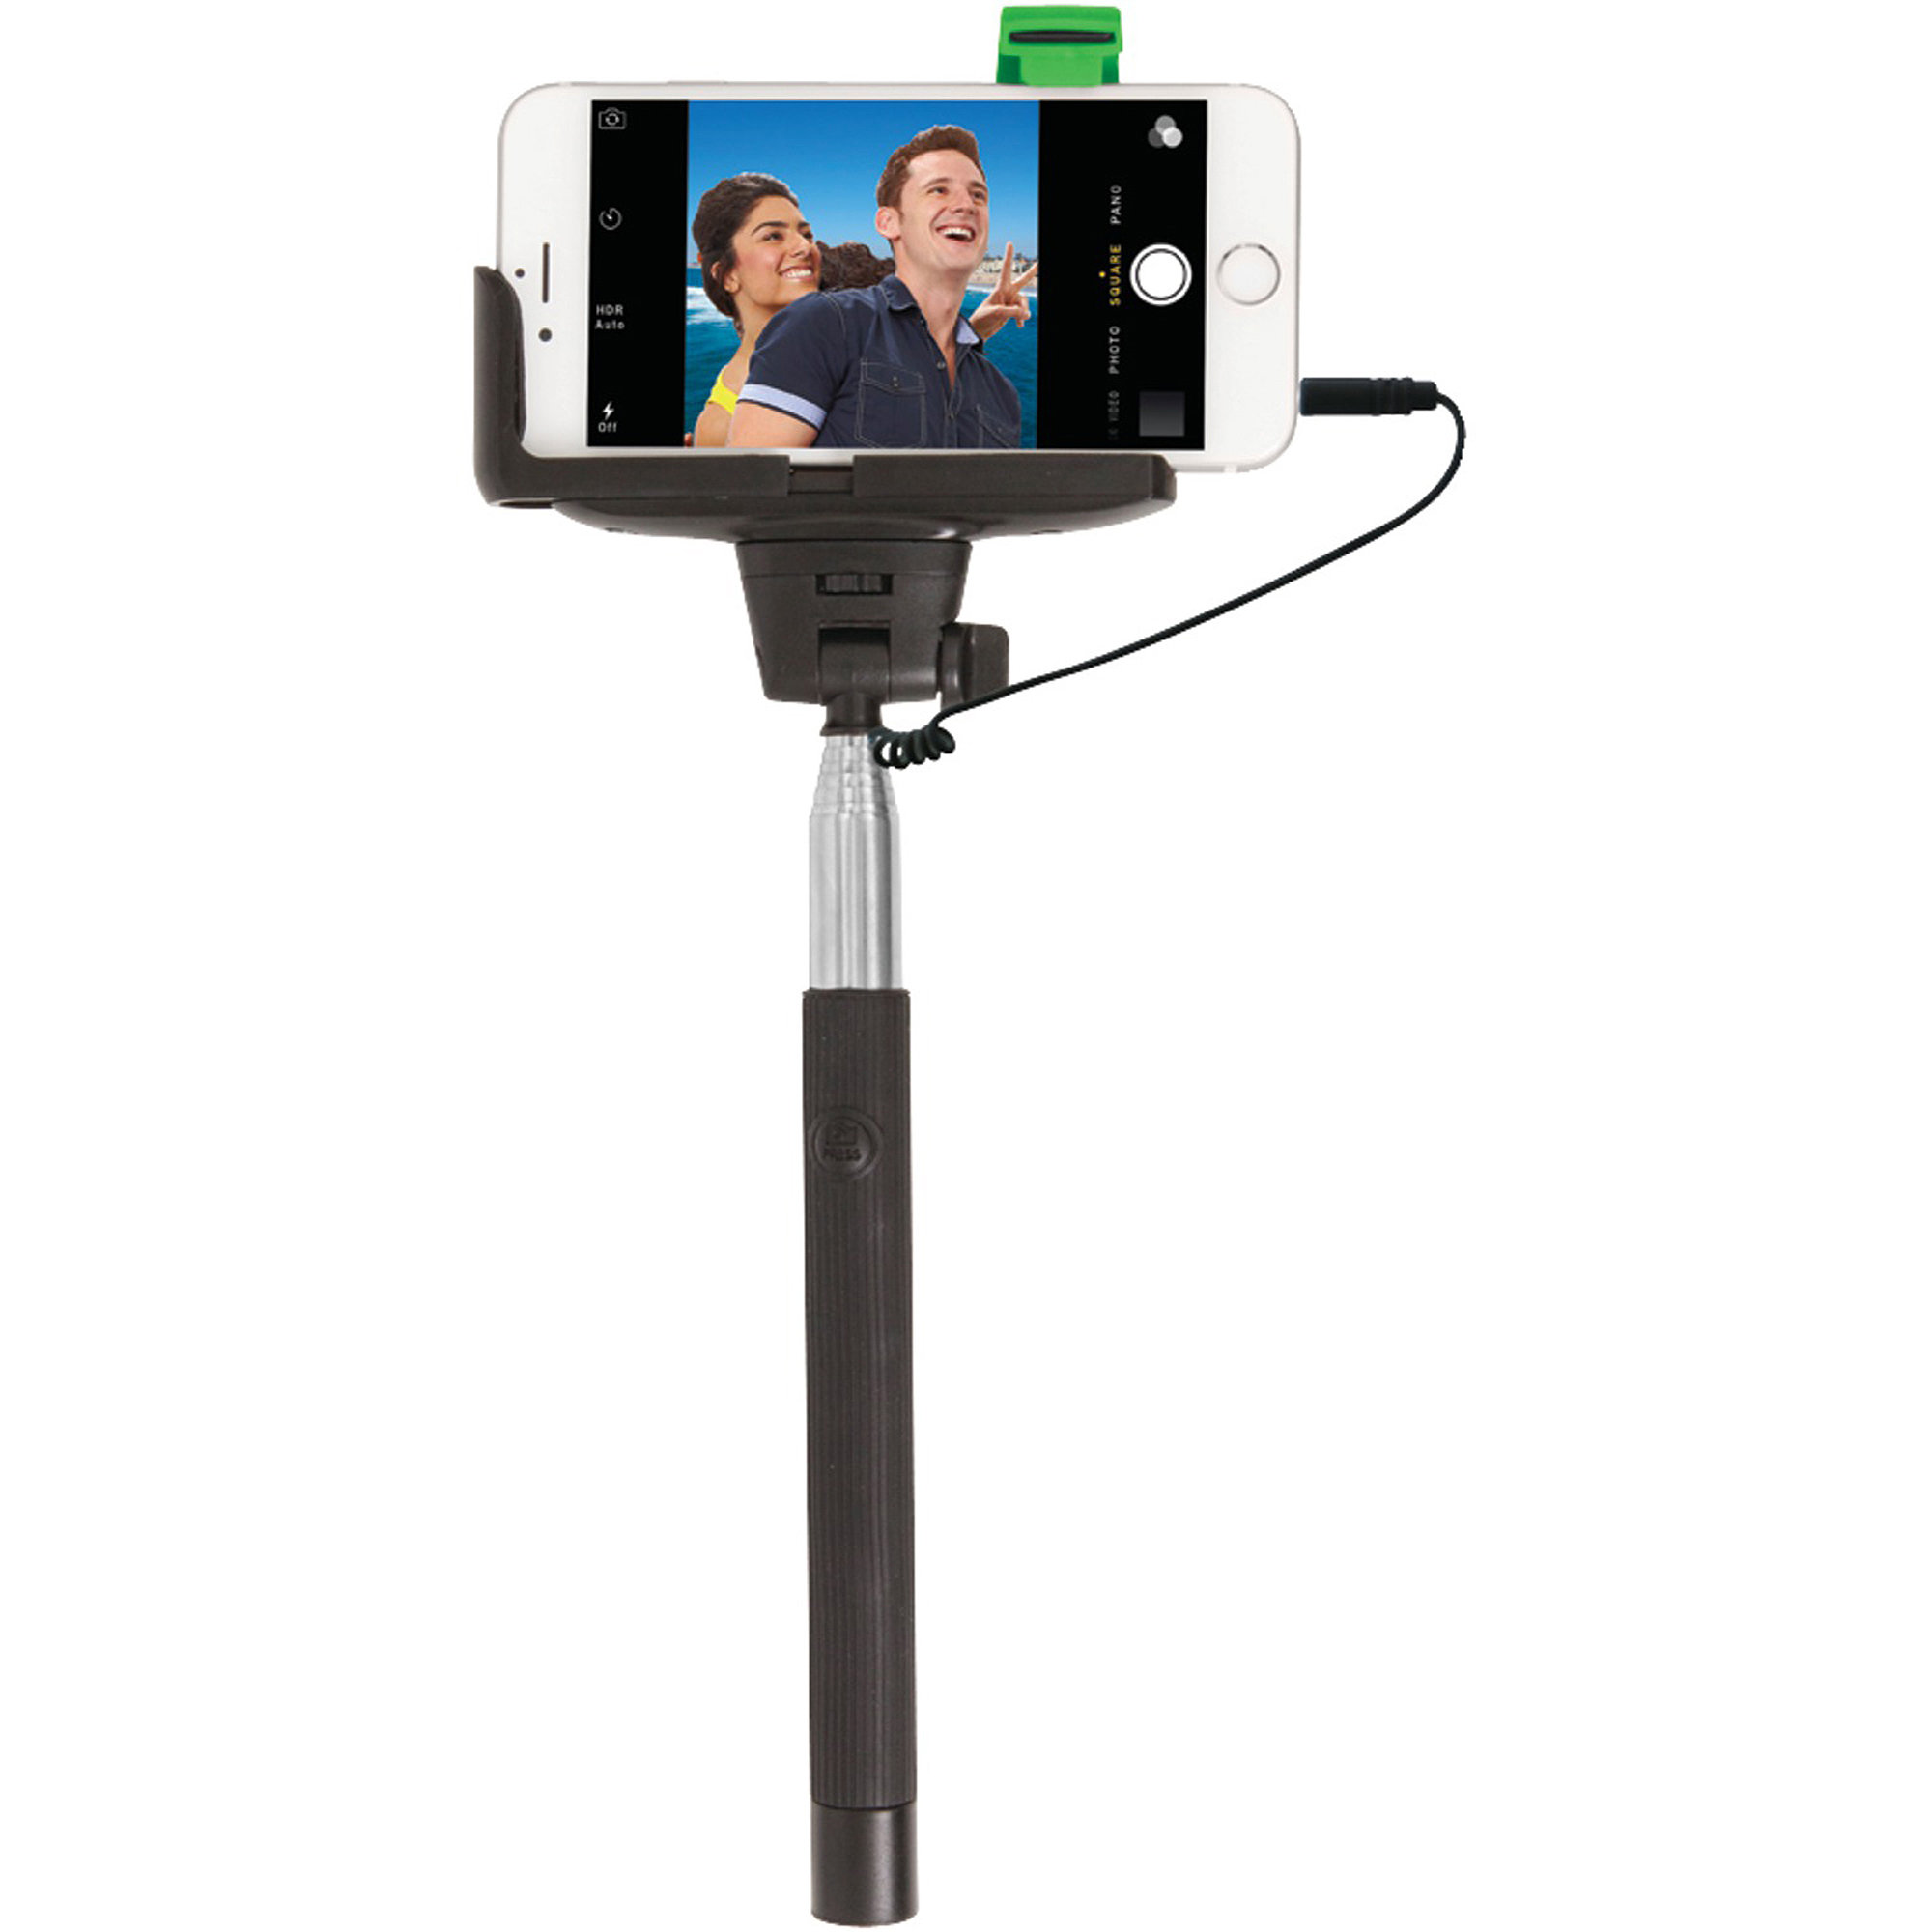 Retrack Apple iPhone 4/5/5s/6 and Samsung Galaxy S 3/4 Selfie Stick with...